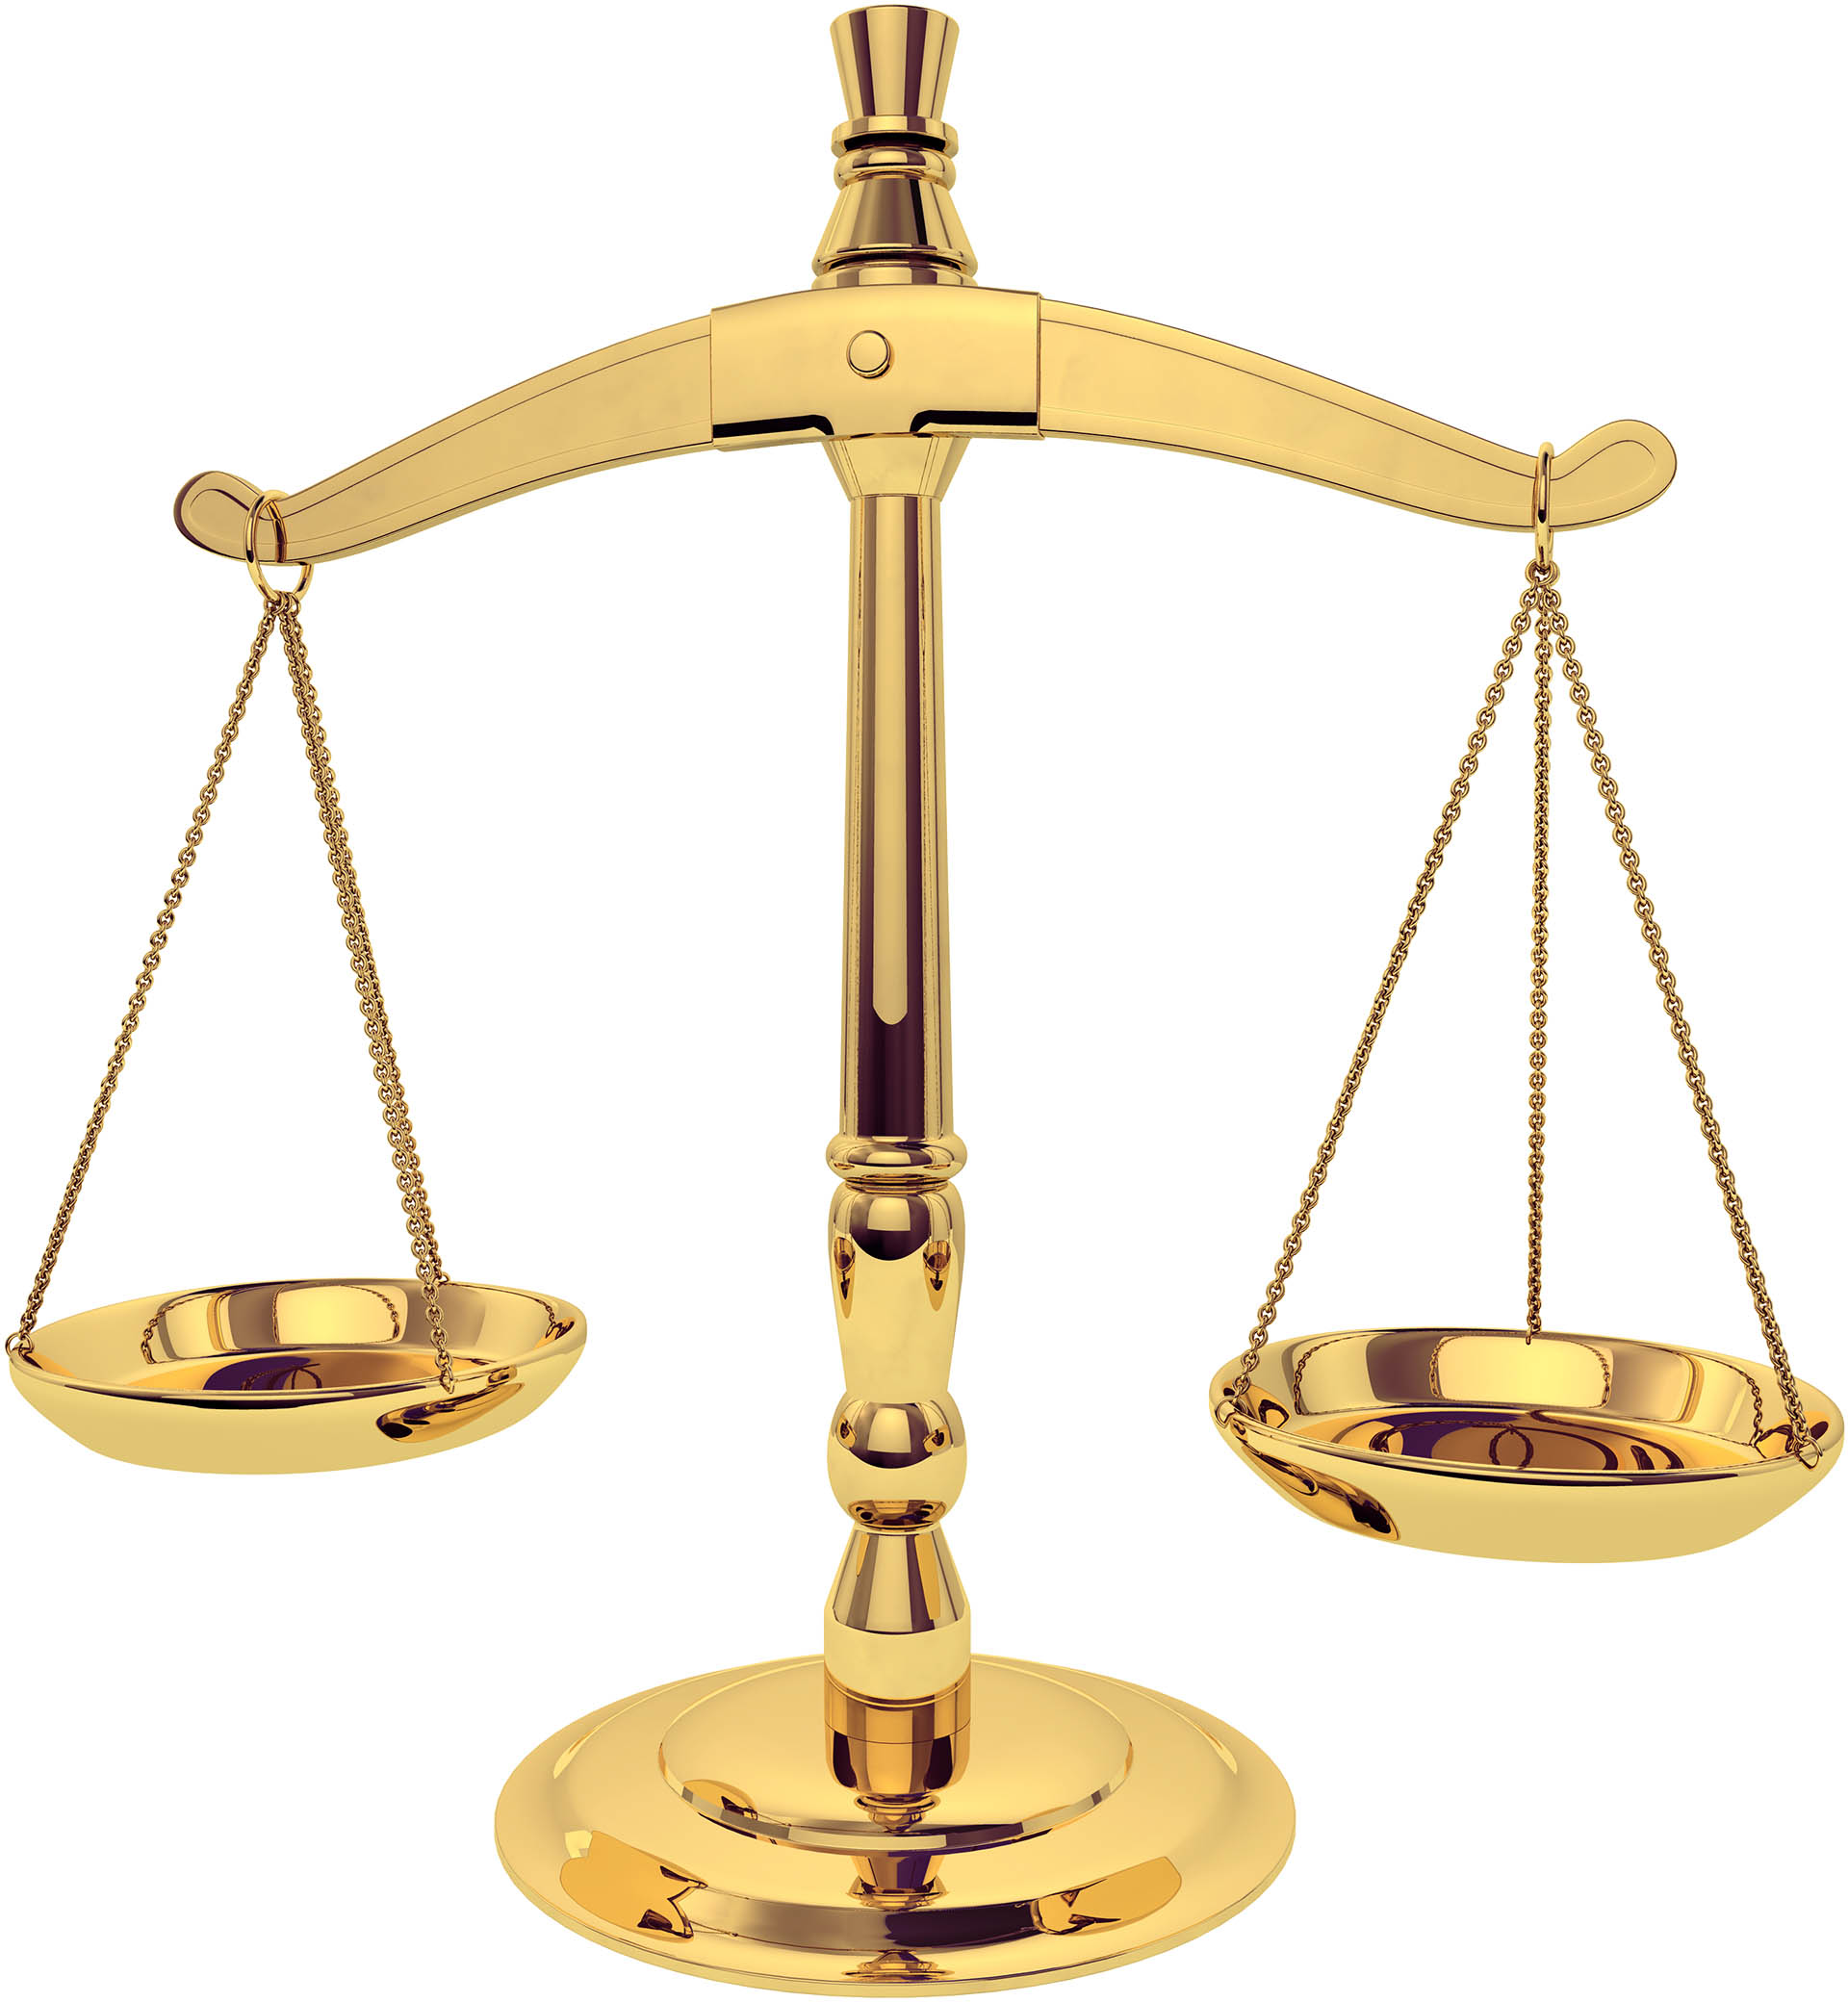 Golden Scales - JUSTICE (TRUTH FACTS EVIDEN